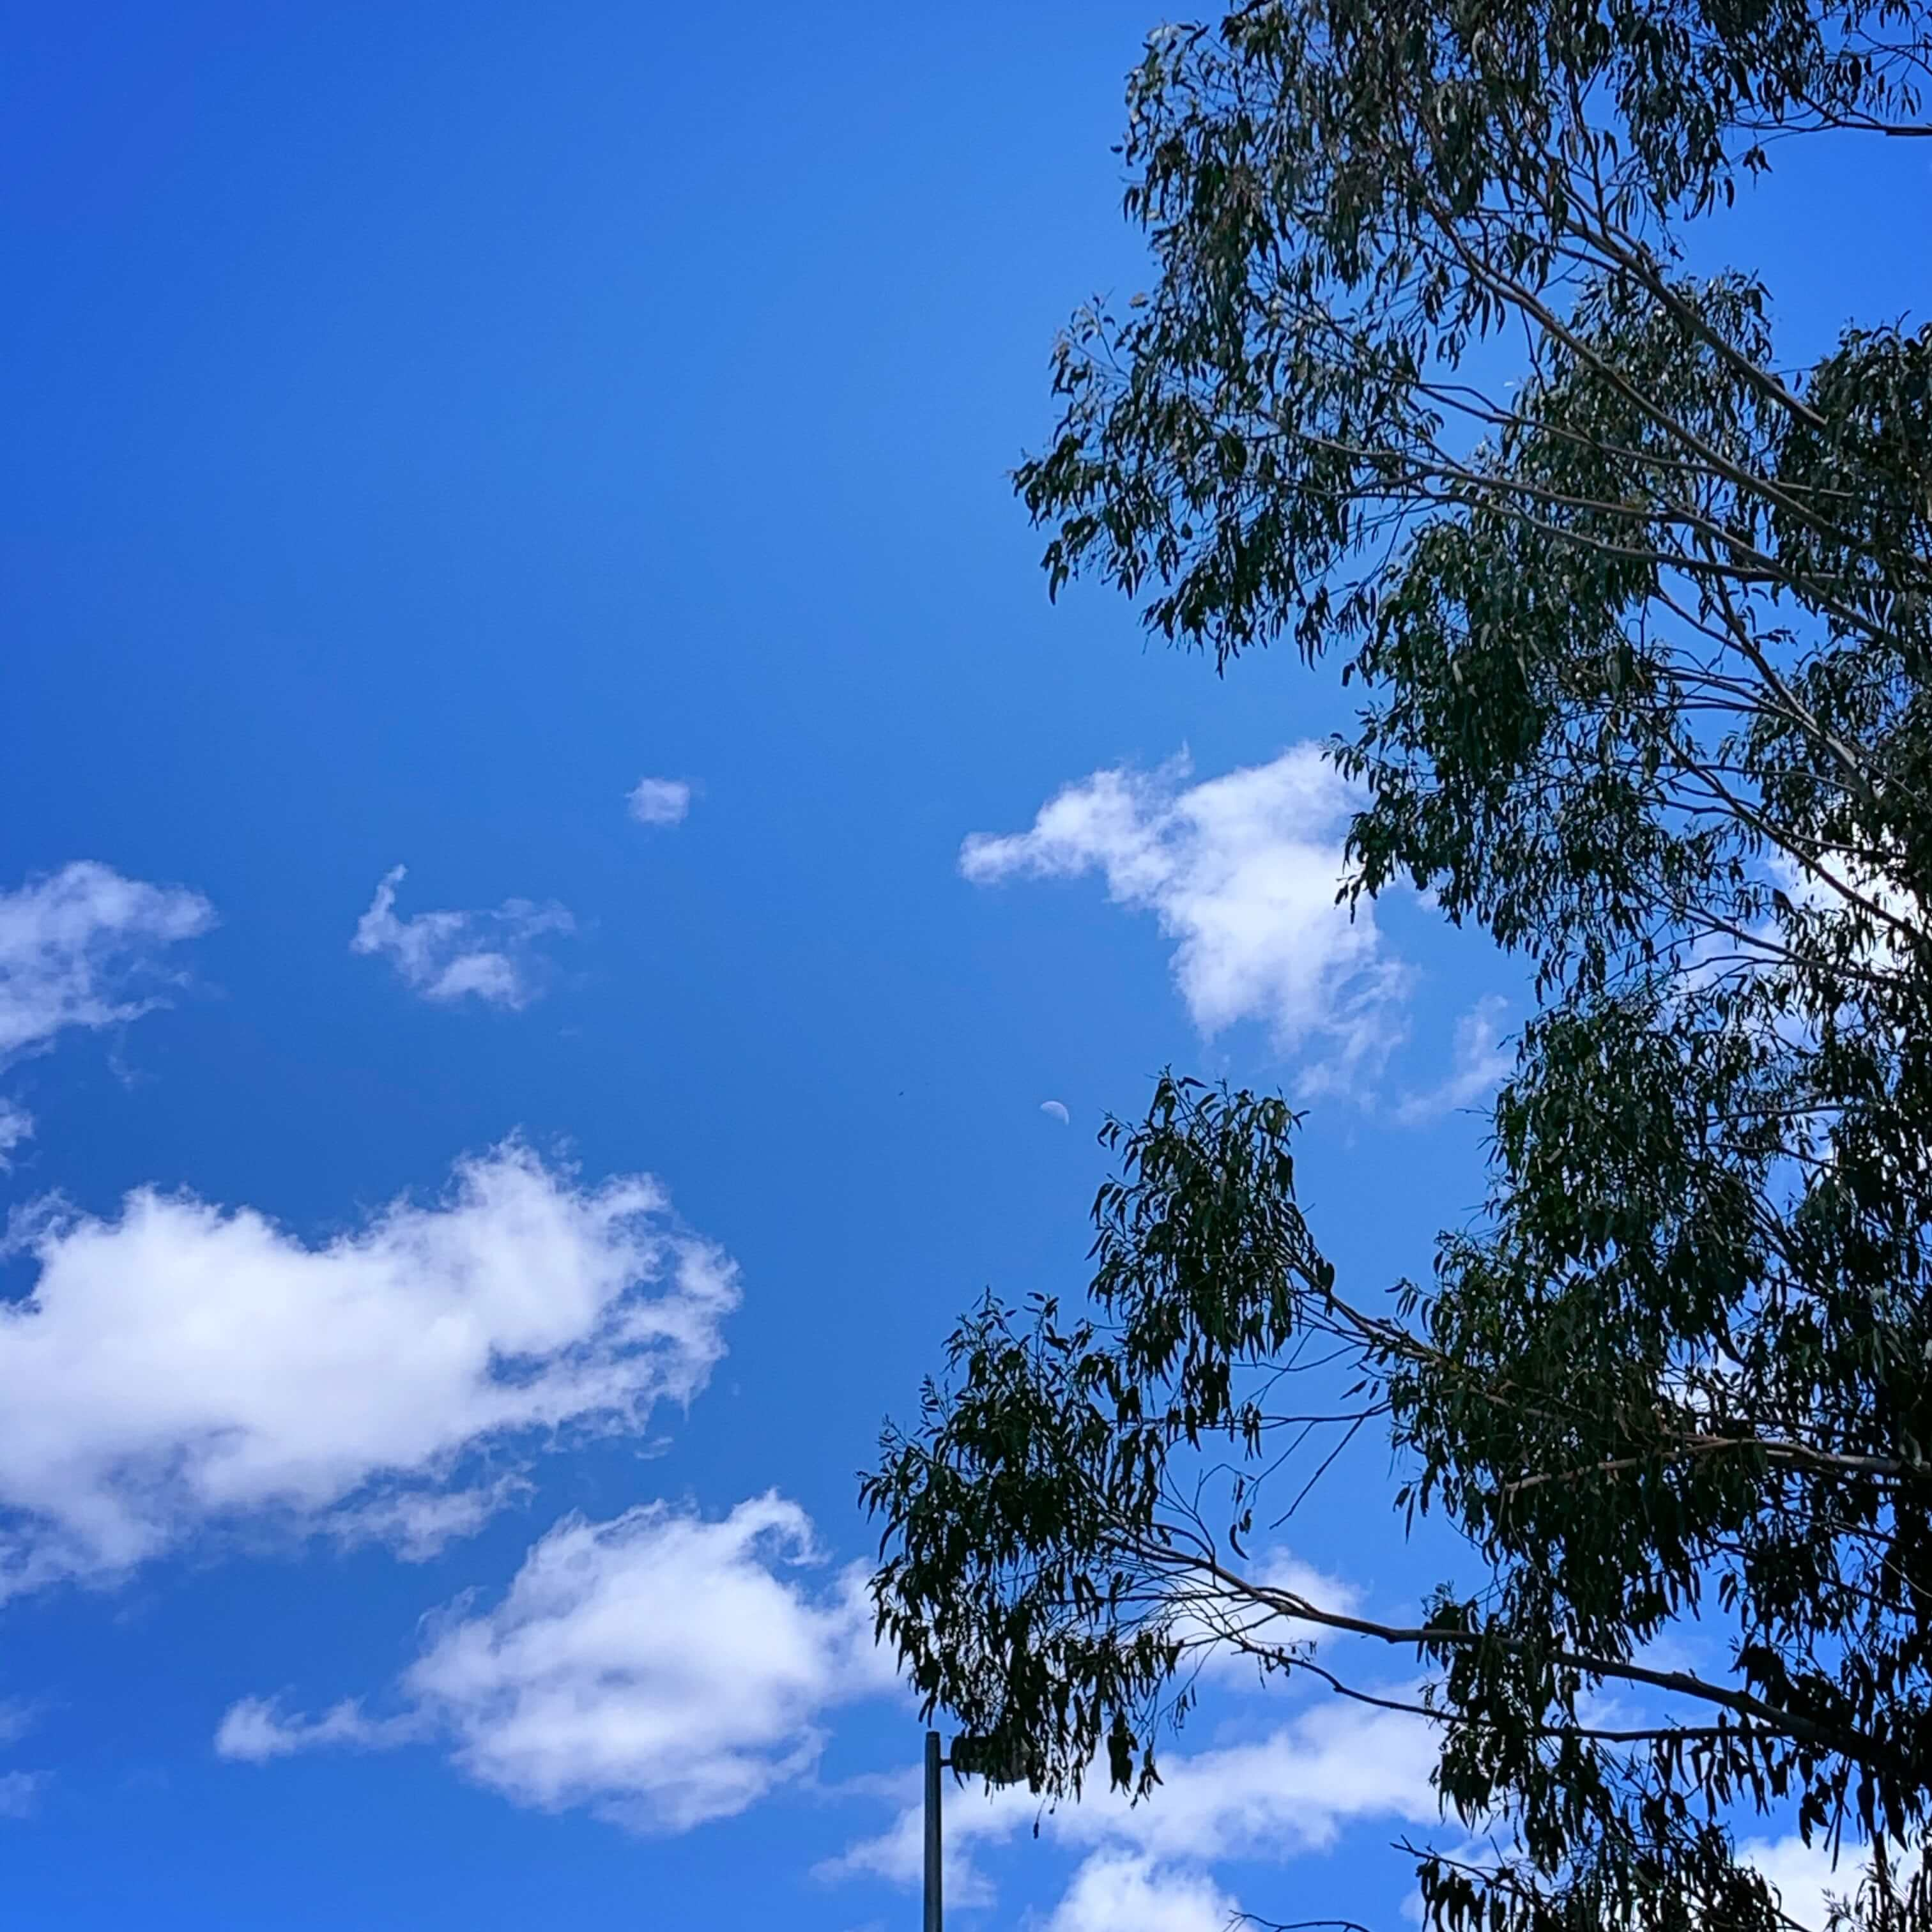 Autumn midday in Canberra